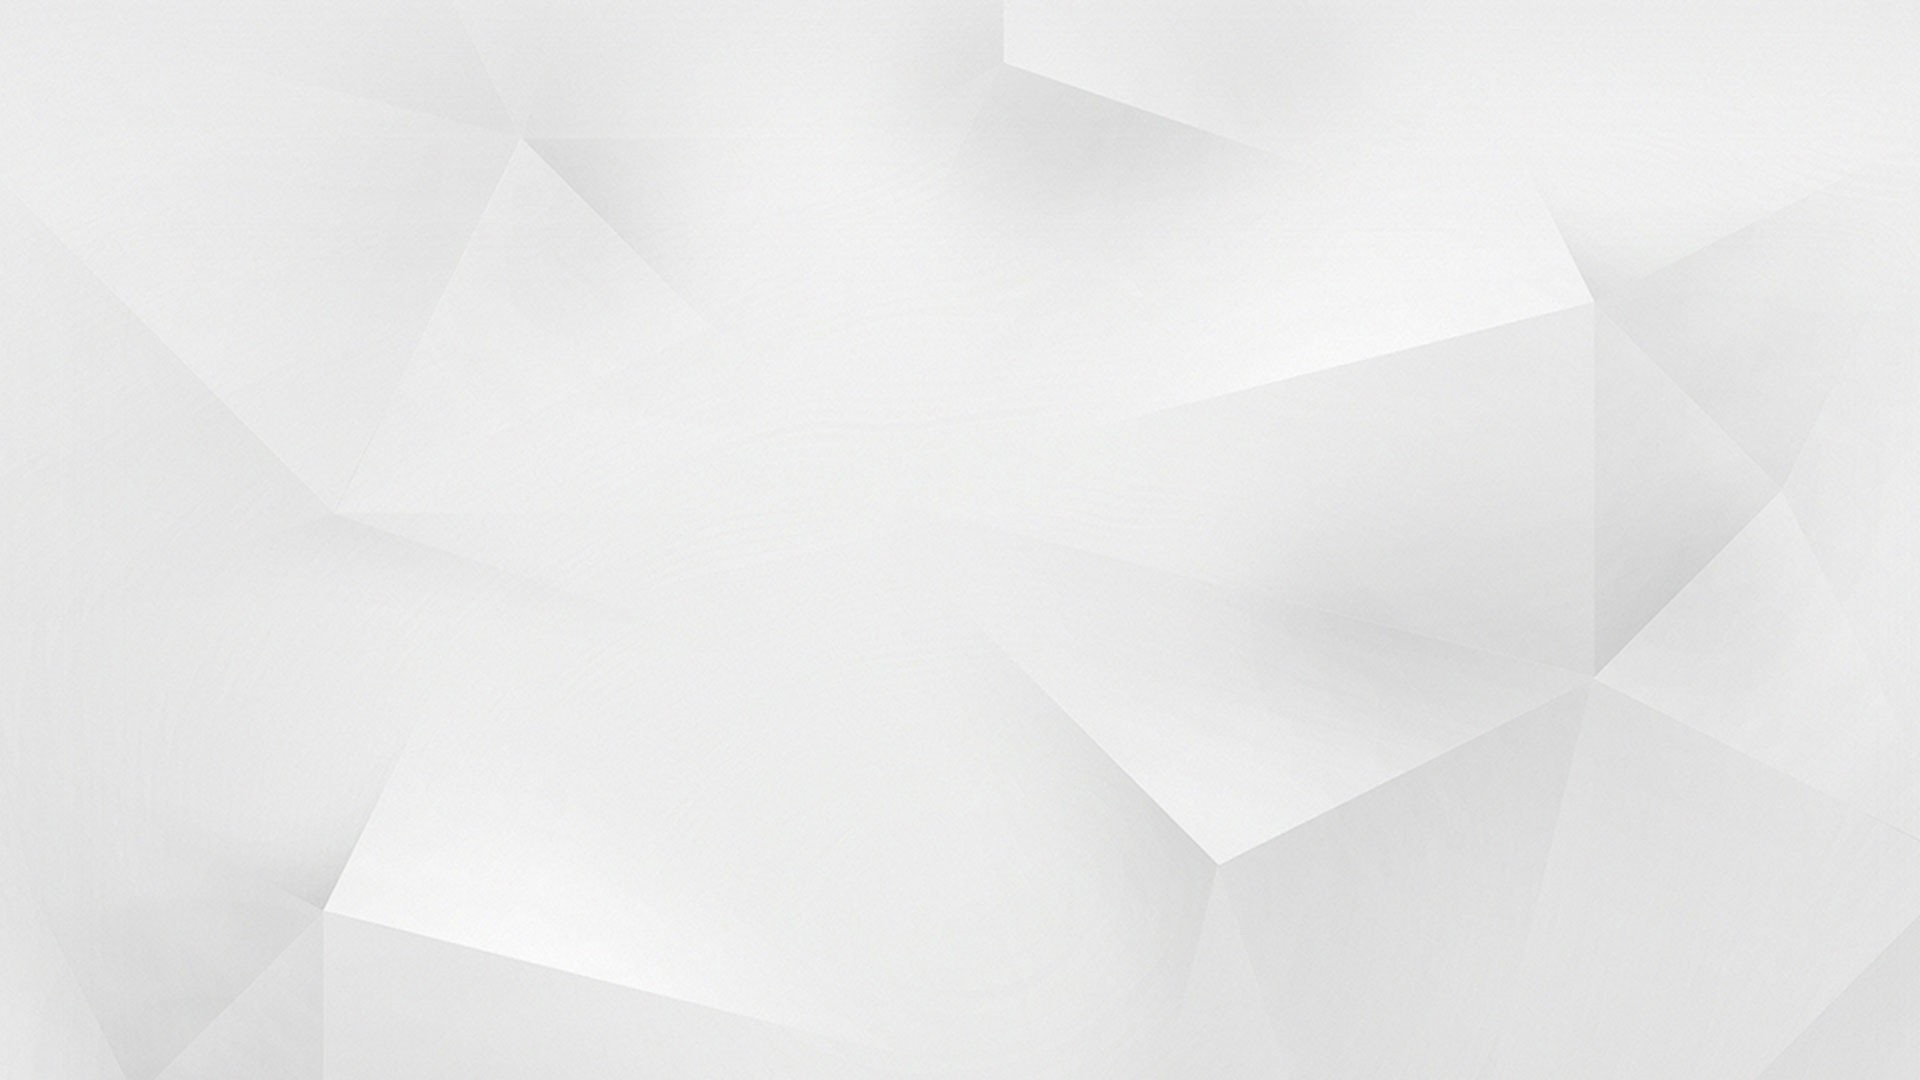 Solid White Free Wallpaper and Background